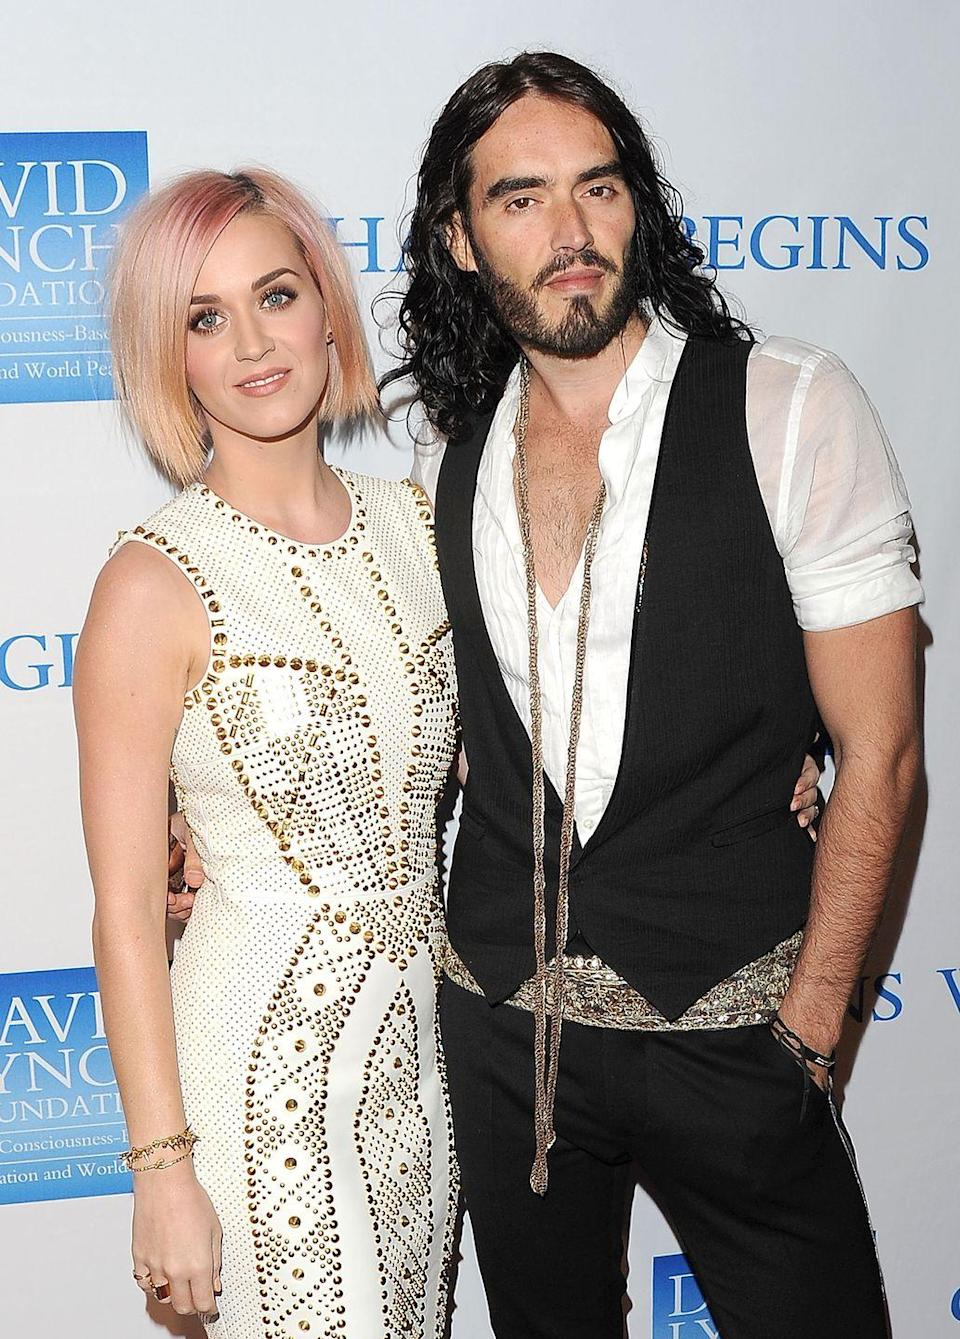 """<p>Katy may have just gotten engaged to Orlando Bloom, but, uh, remember when she was married to Russell? The pop star and the British actor said """"I do"""" in a lavish Indian wedding in 2010, then separated only 14 months later.</p>"""